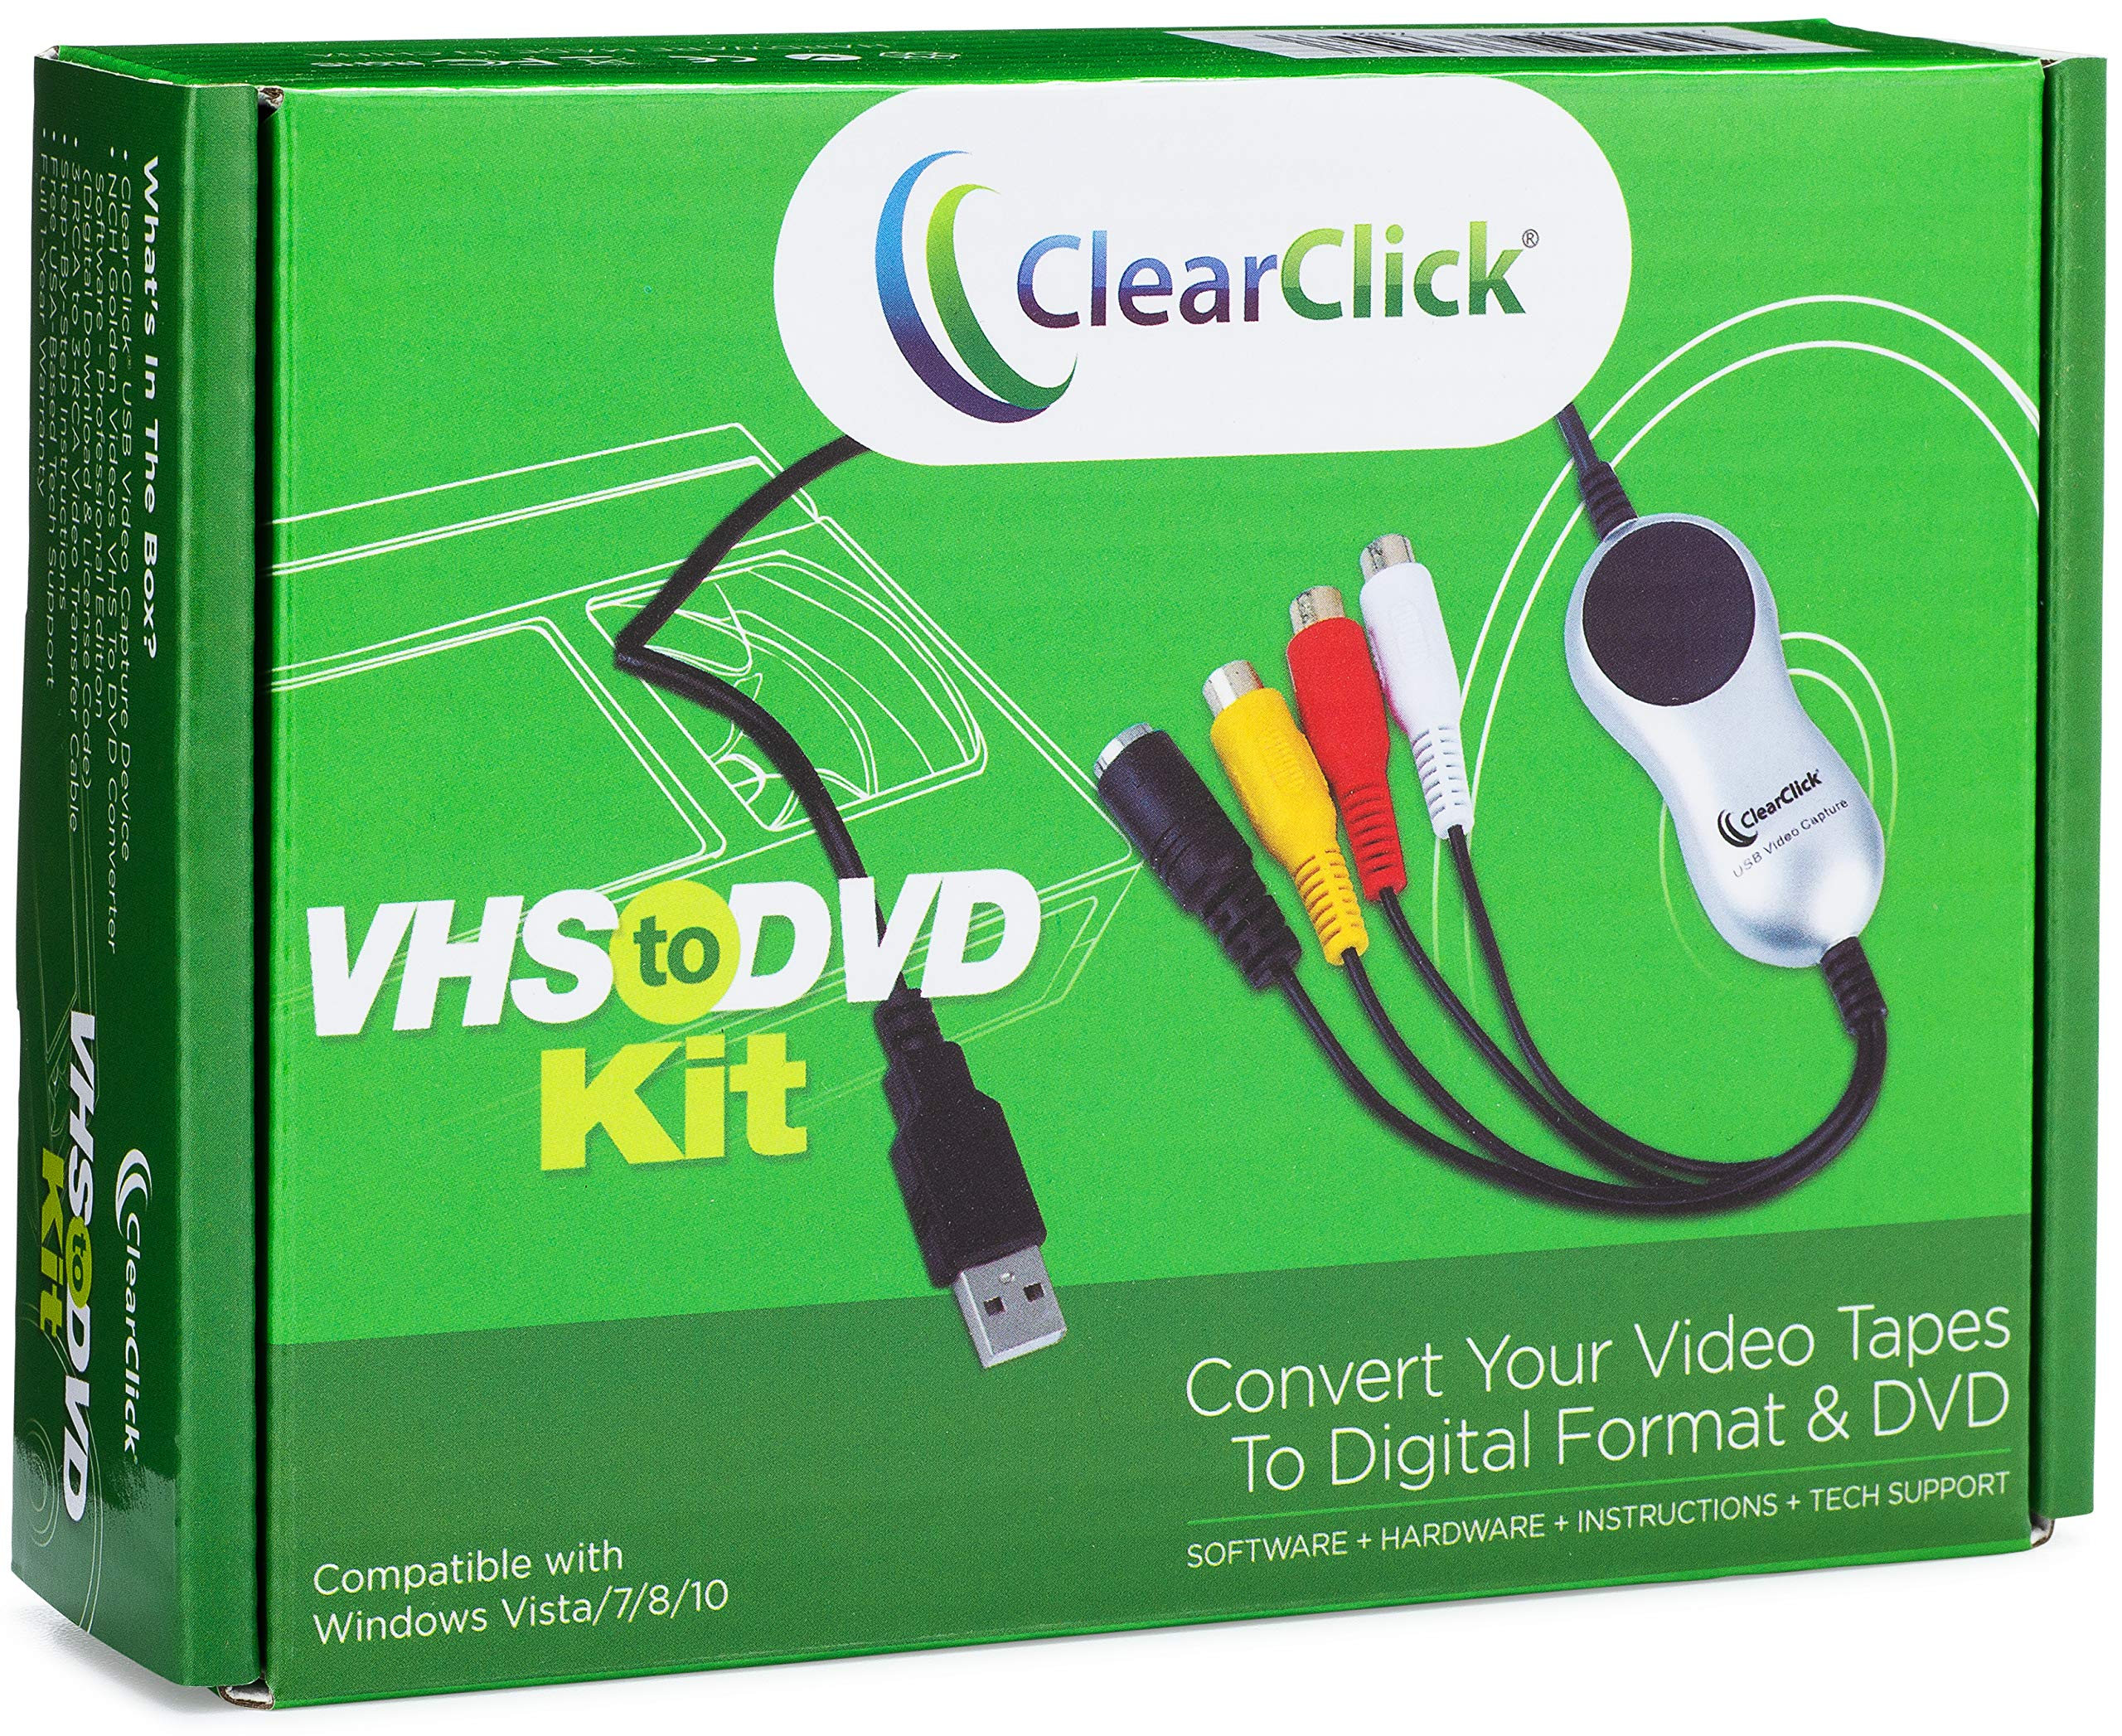 ClearClick VHS to DVD Kit for PC - Software & USB Video Capture Device - Capture from VCR, VHS, Hi8, Camcorders, Gaming Systems